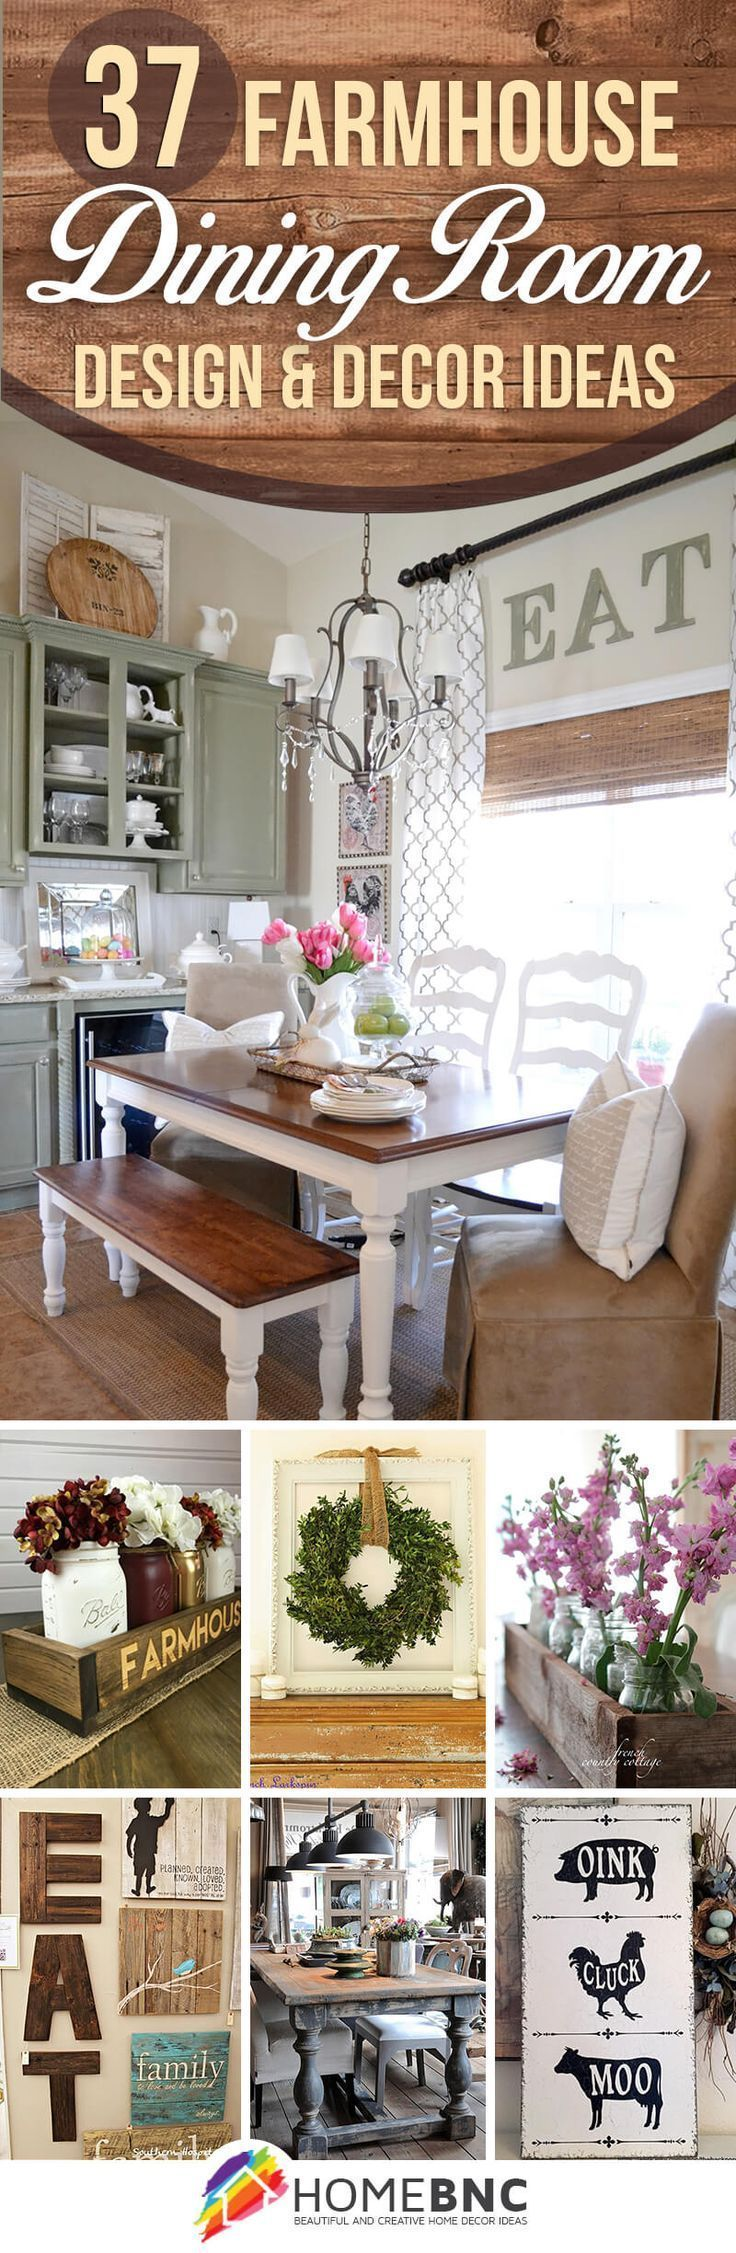 Modern farmhouse dining room makeover beautiful dining room makeover - 37 Timeless Farmhouse Dining Room Design Ideas That Are Simply Charming